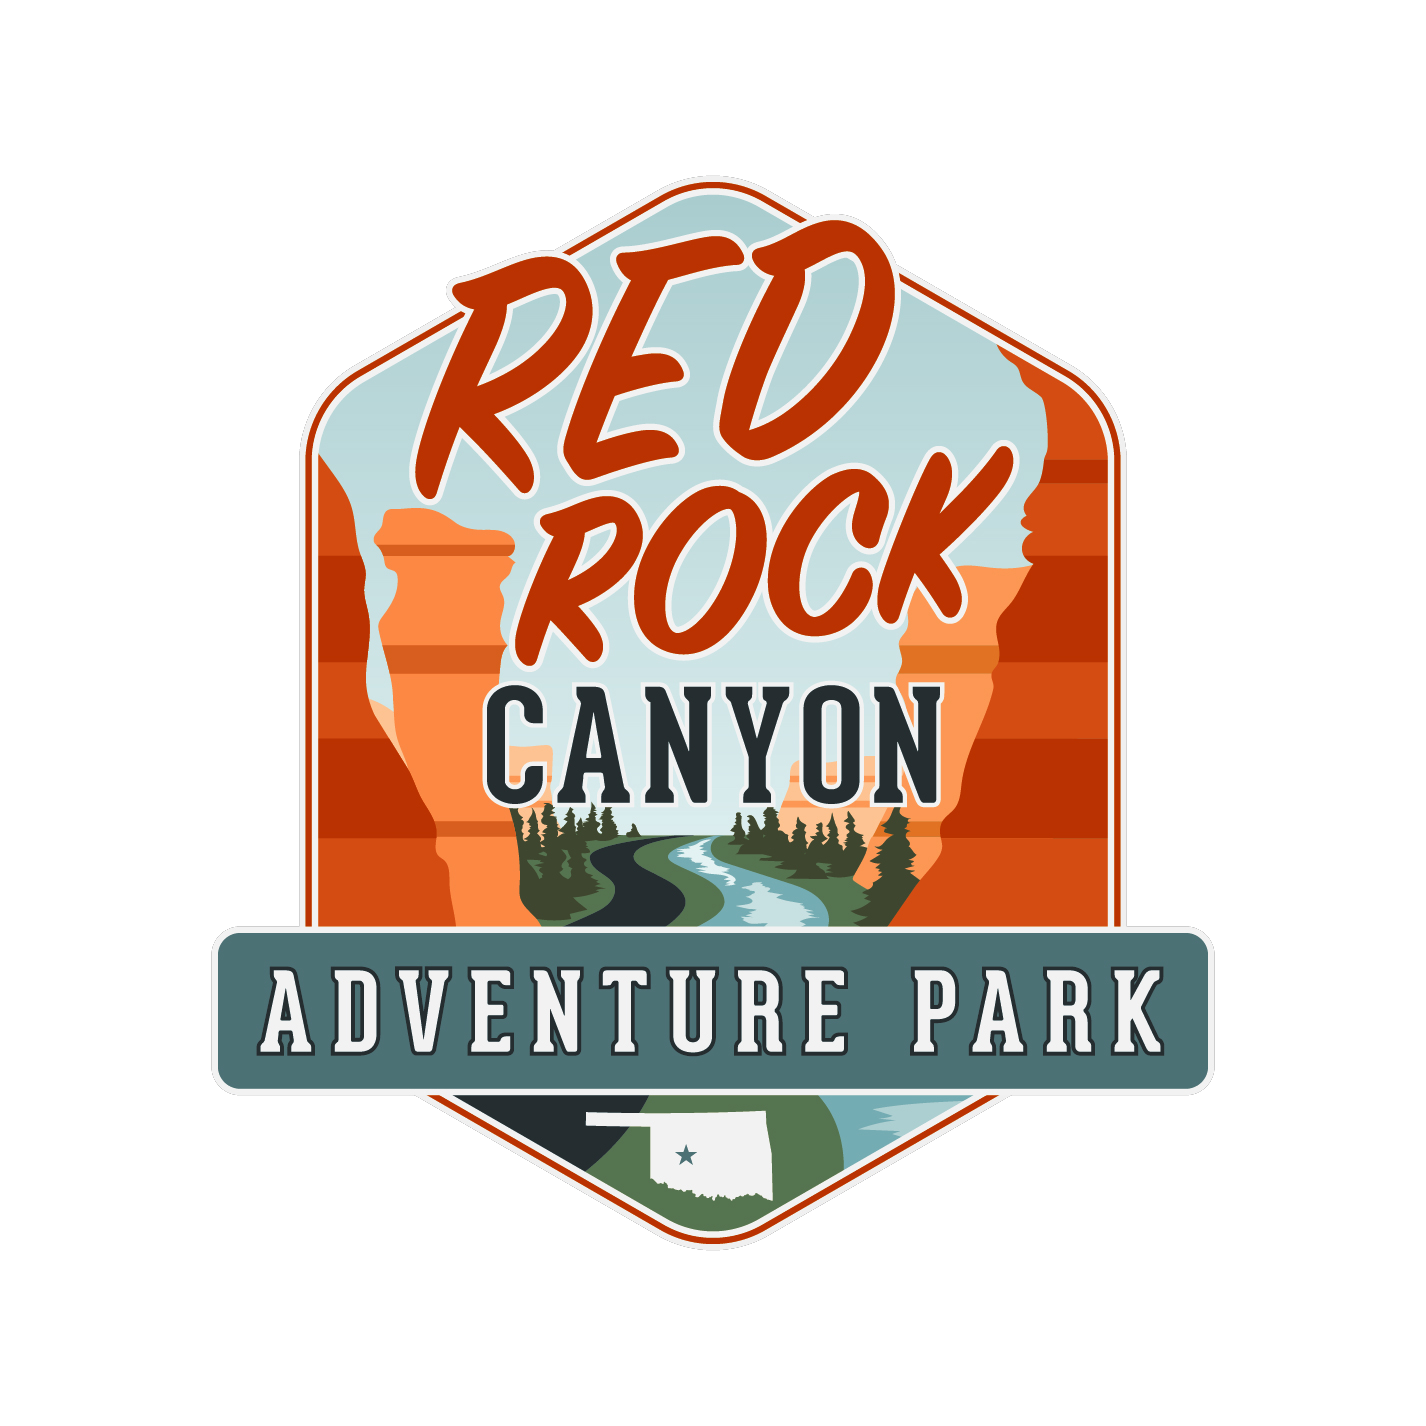 Red Rock Canyon Adventure Park